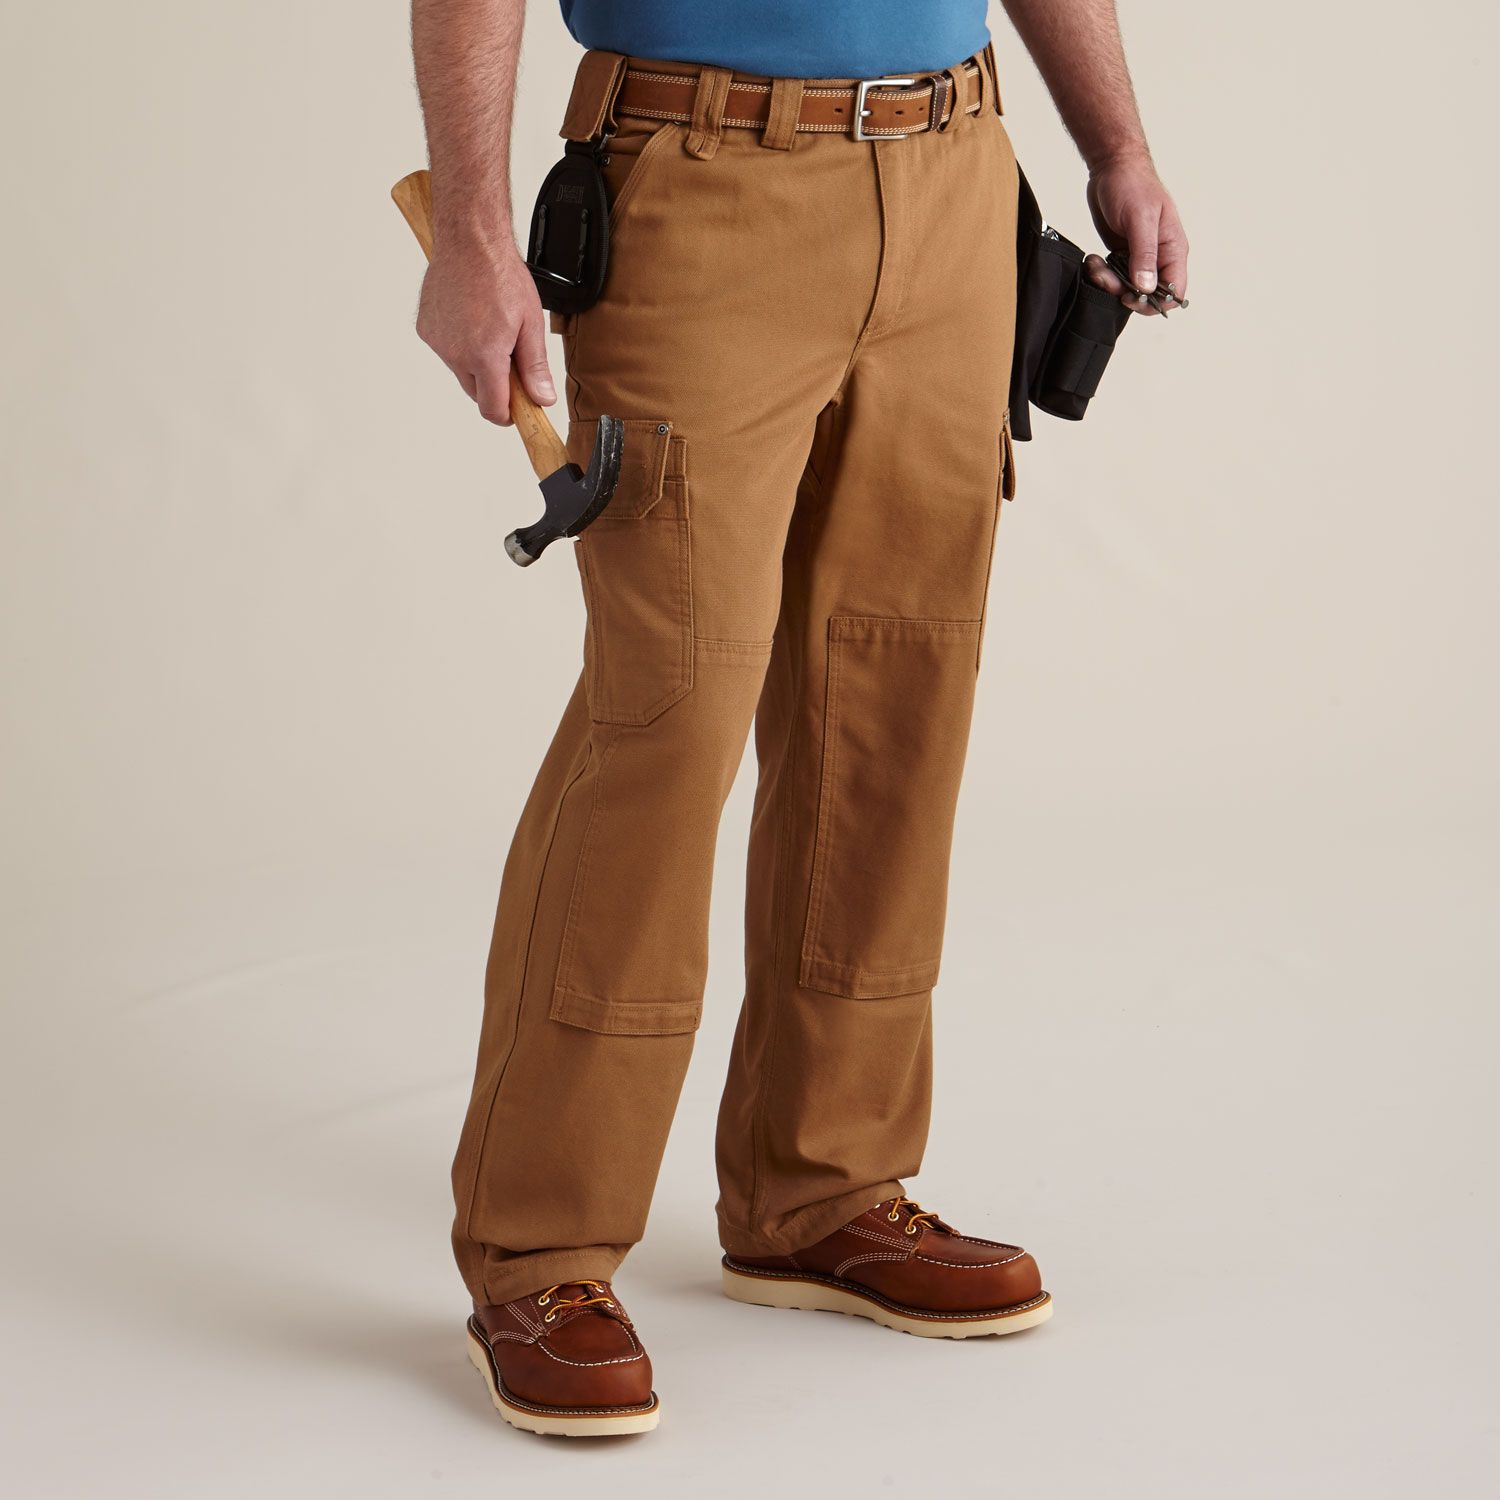 6af408b94d Men's Ultimate Fire Hose Cargo Work Pants - Duluth Trading | The ...